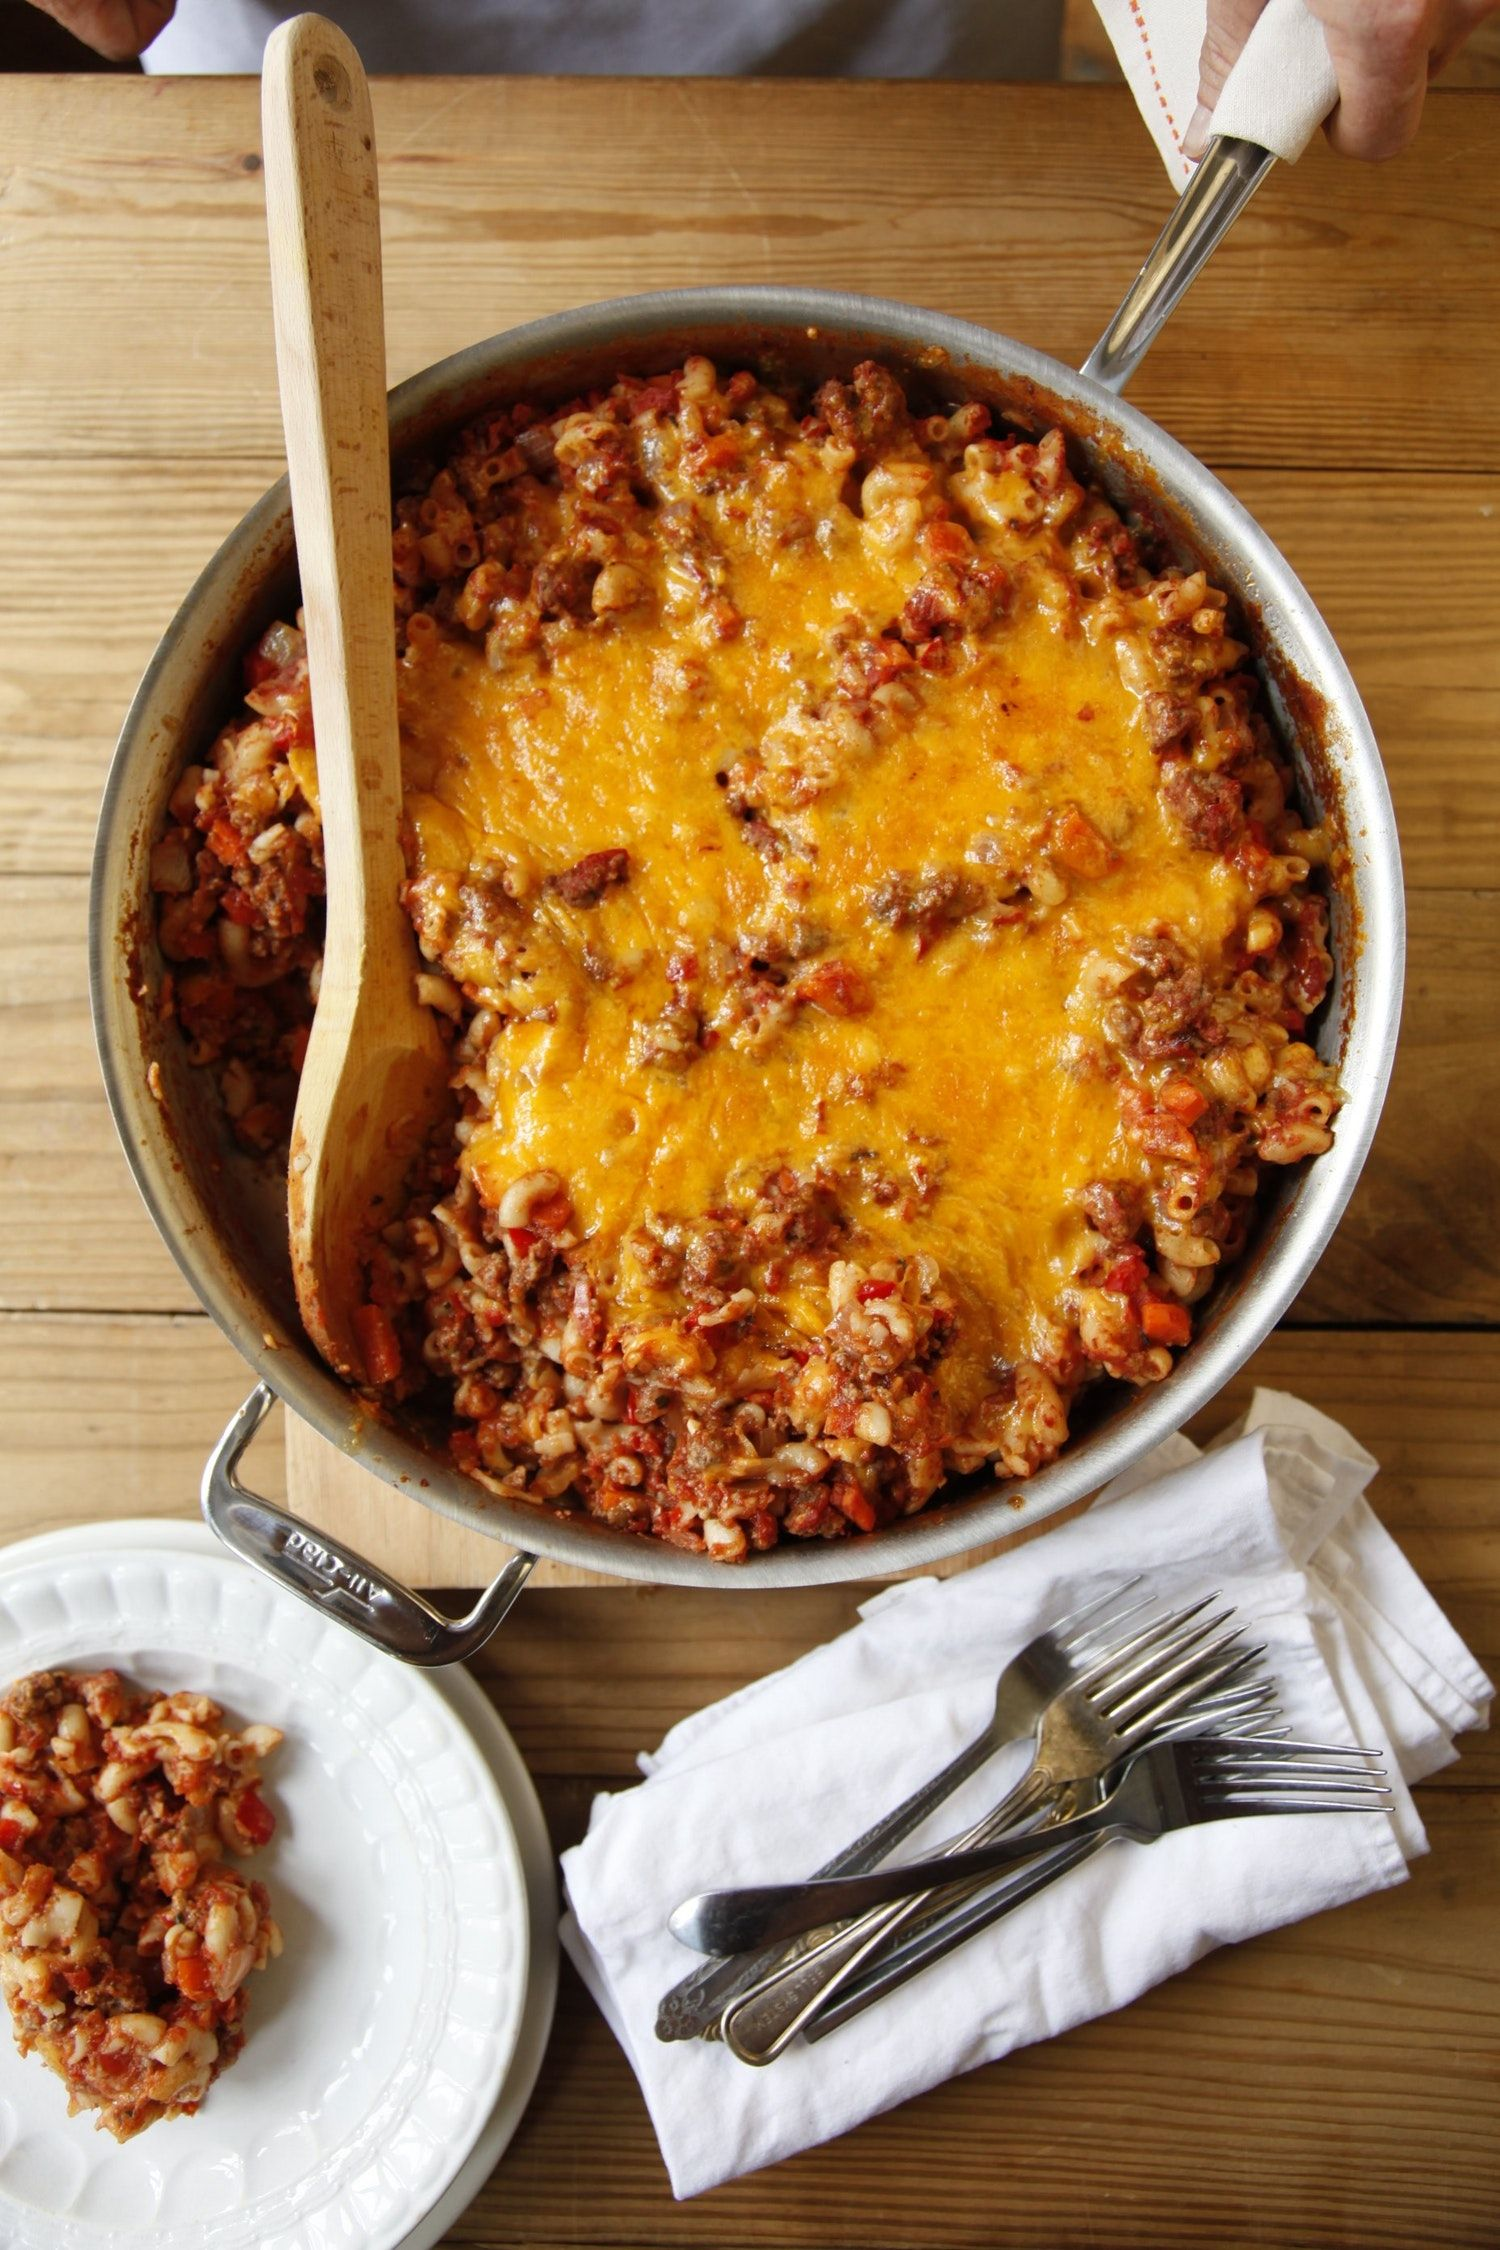 Recipe One Skillet Cheesy Beef And Macaroni Recipe Macaroni Recipes Recipes Food